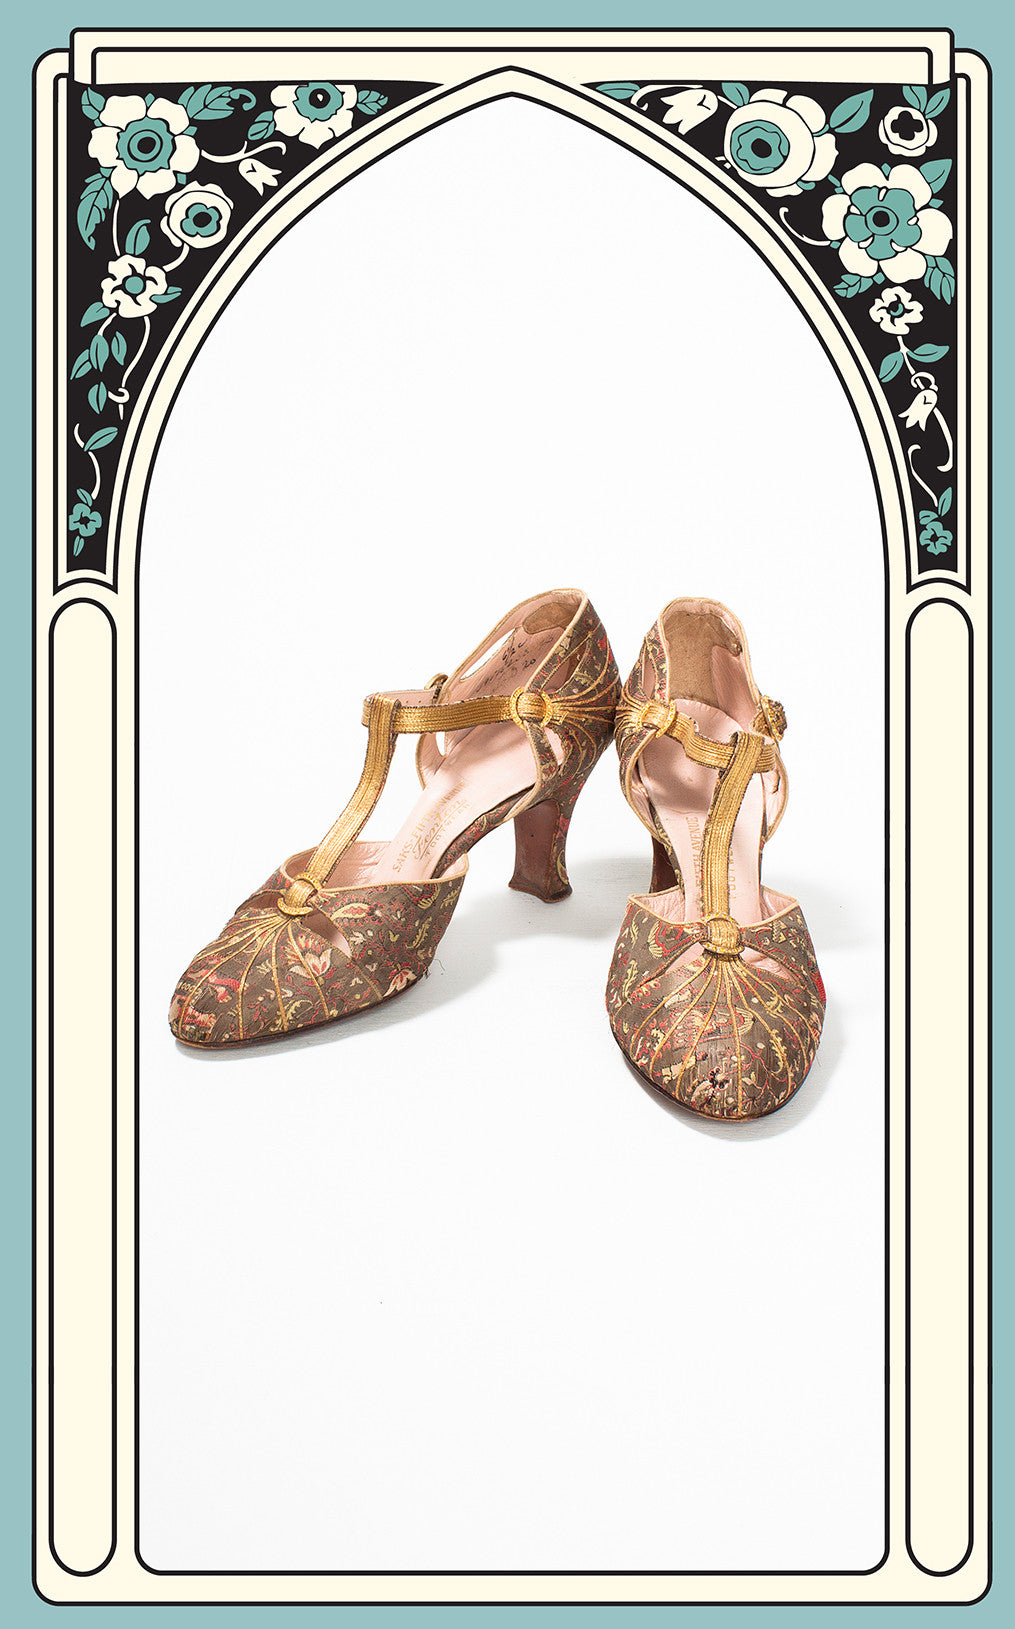 RESERVED -- 1925 Fenton Footwear for Saks Fifth Avenue India-Inspired Novelty Print Silk Brocade & Gold Lamé Evening Shoes